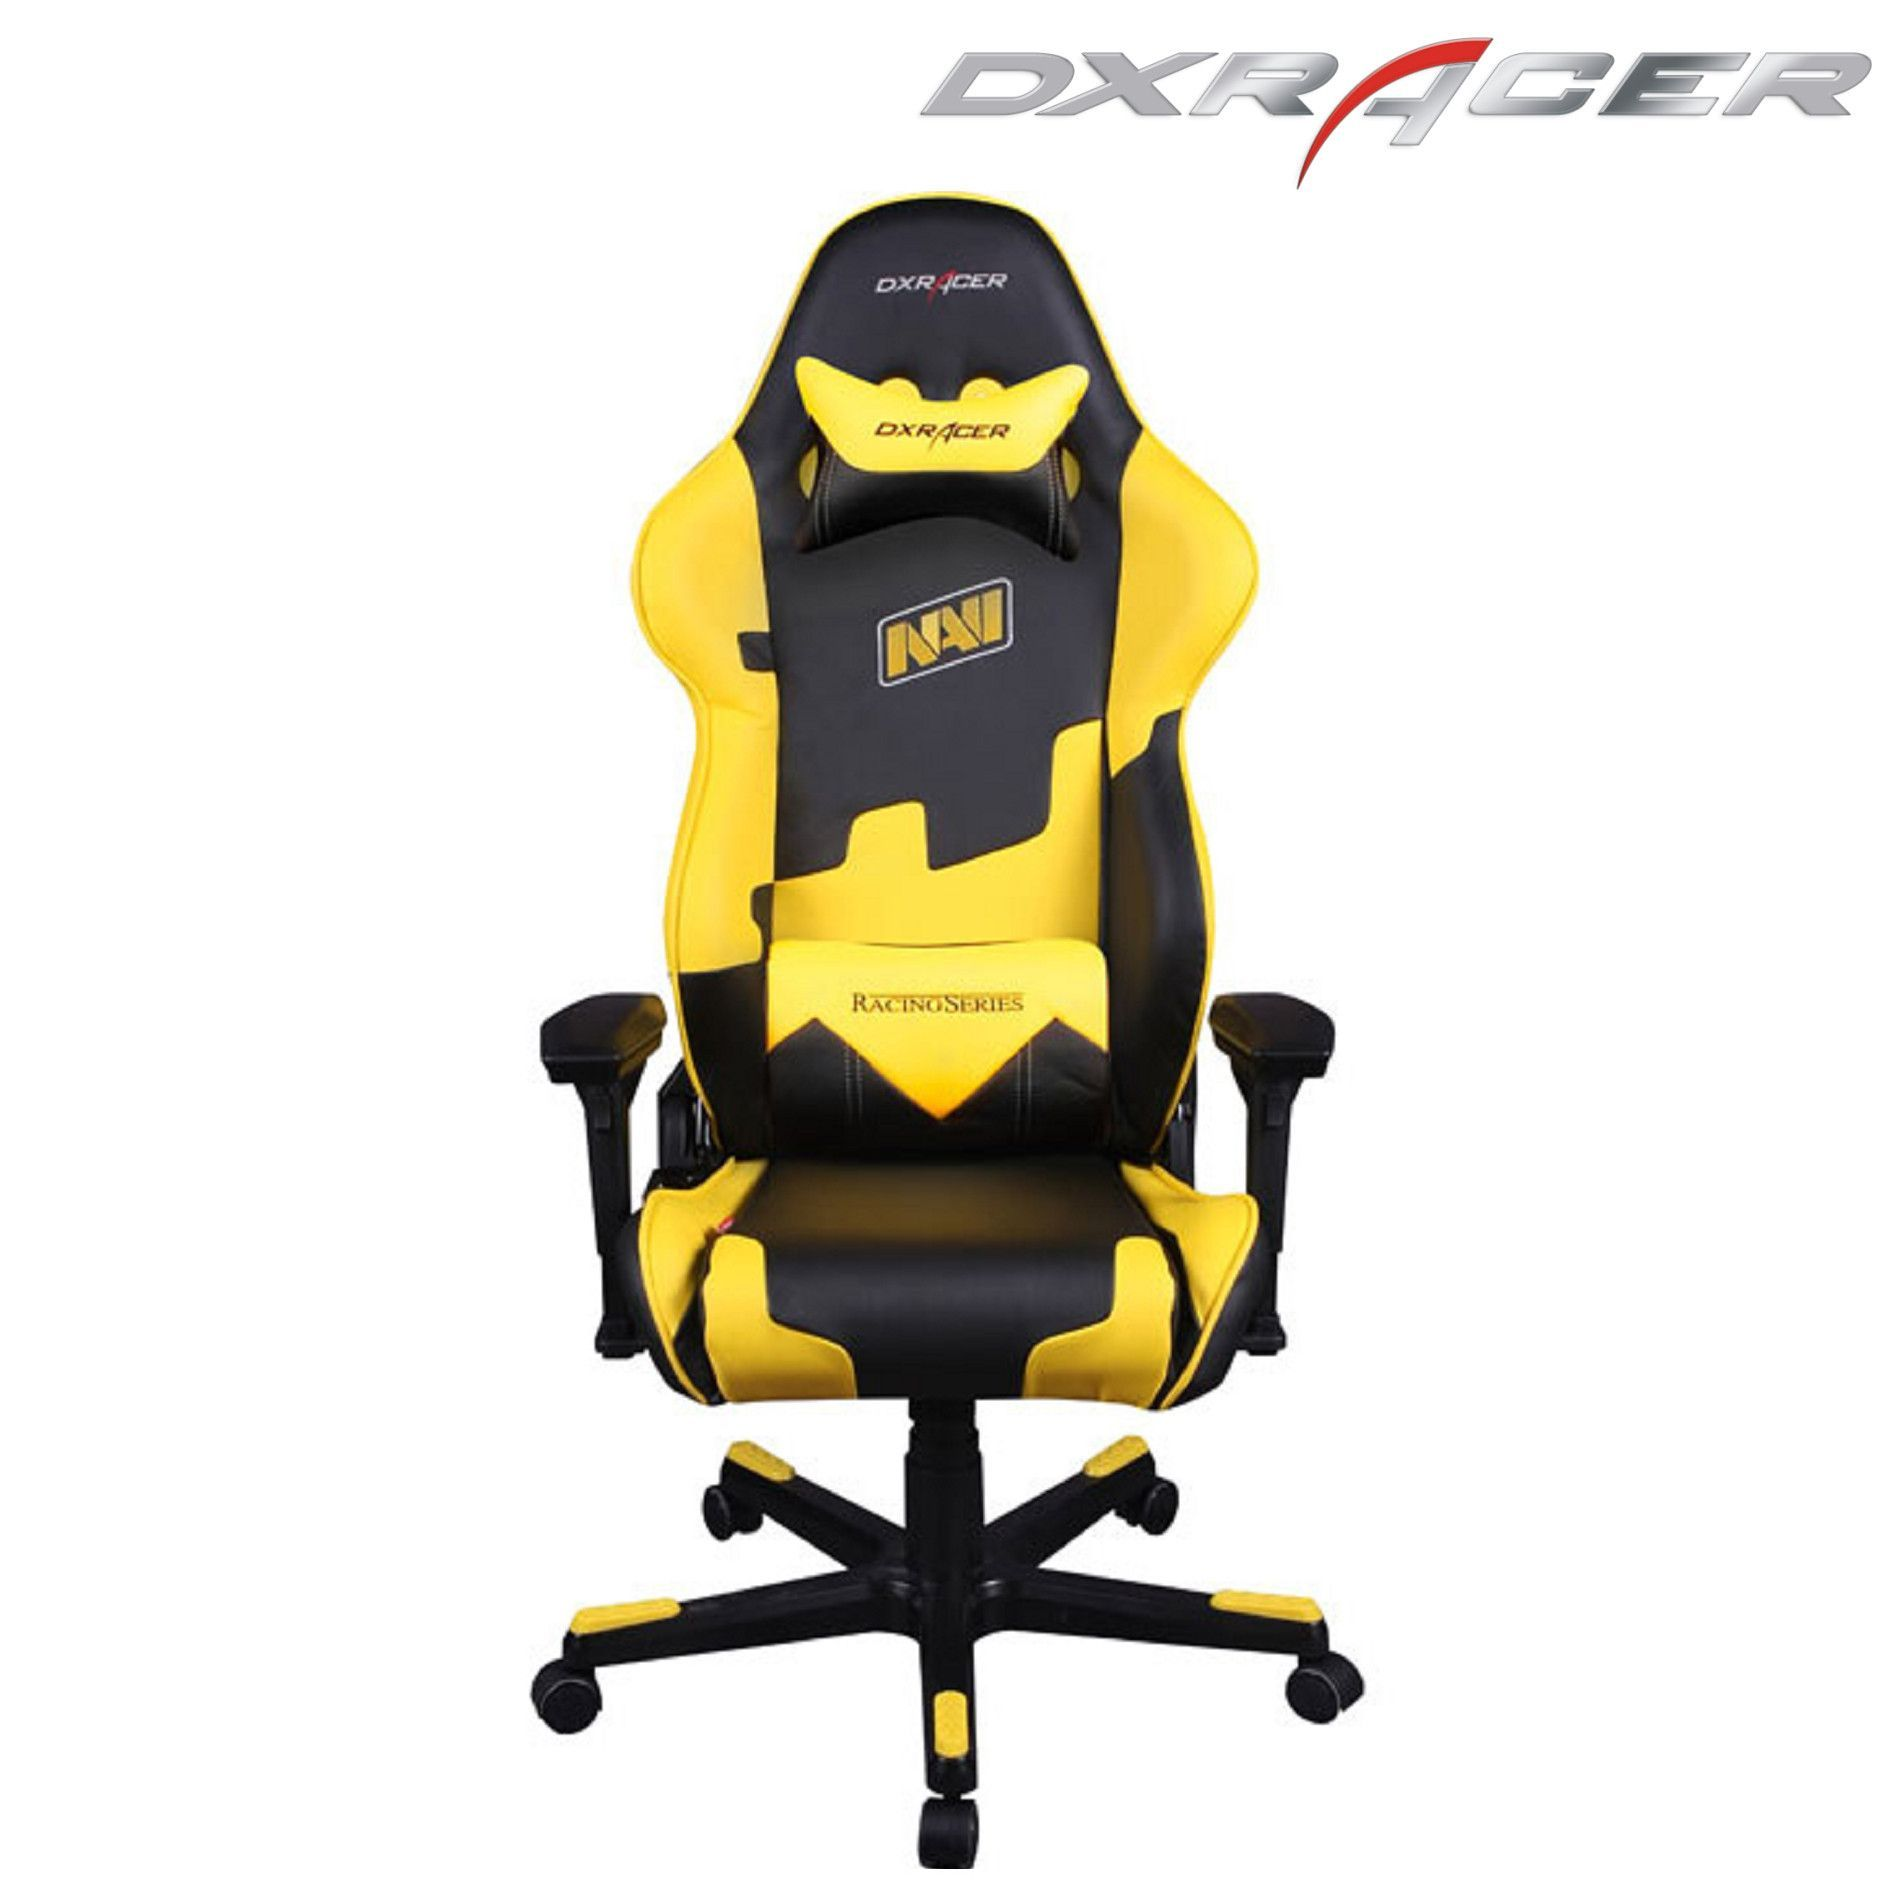 DXRACER NAVI puter chair office chair sports chair gaming chair